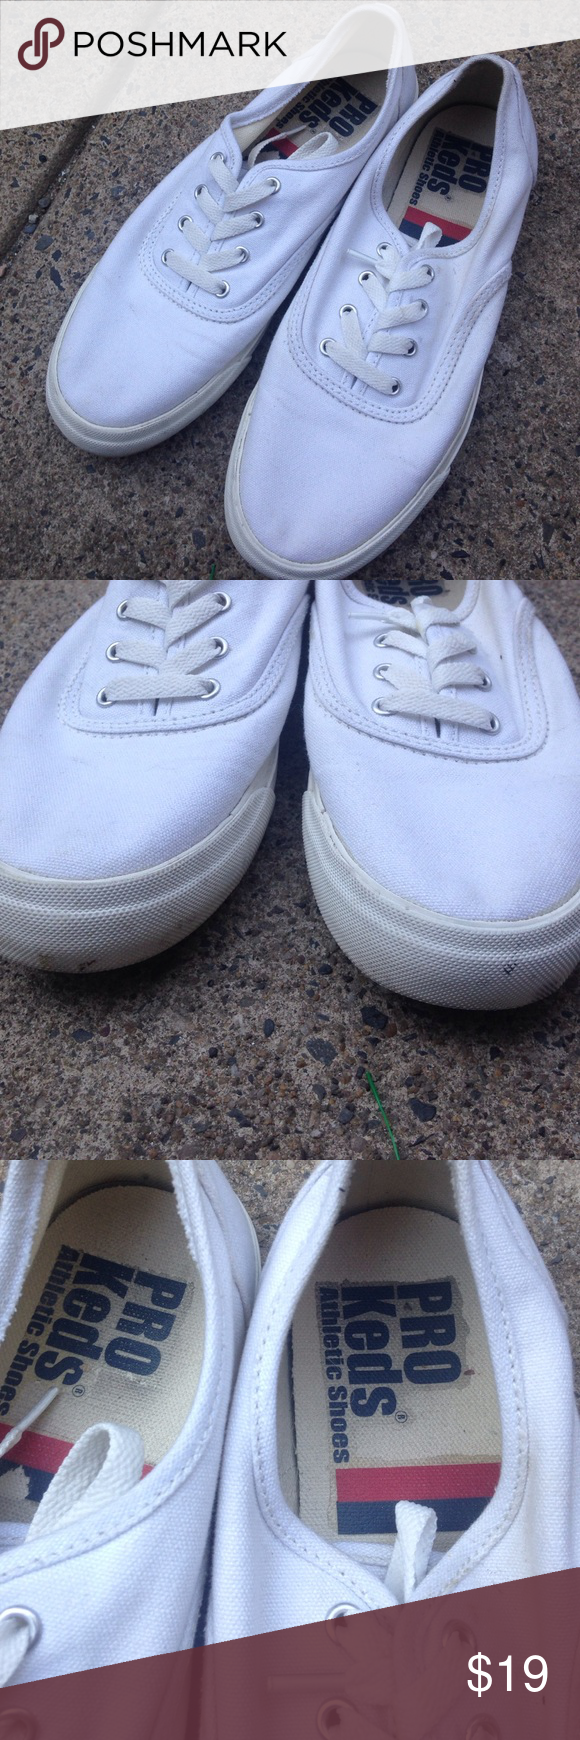 Keds shoes, Sneakers